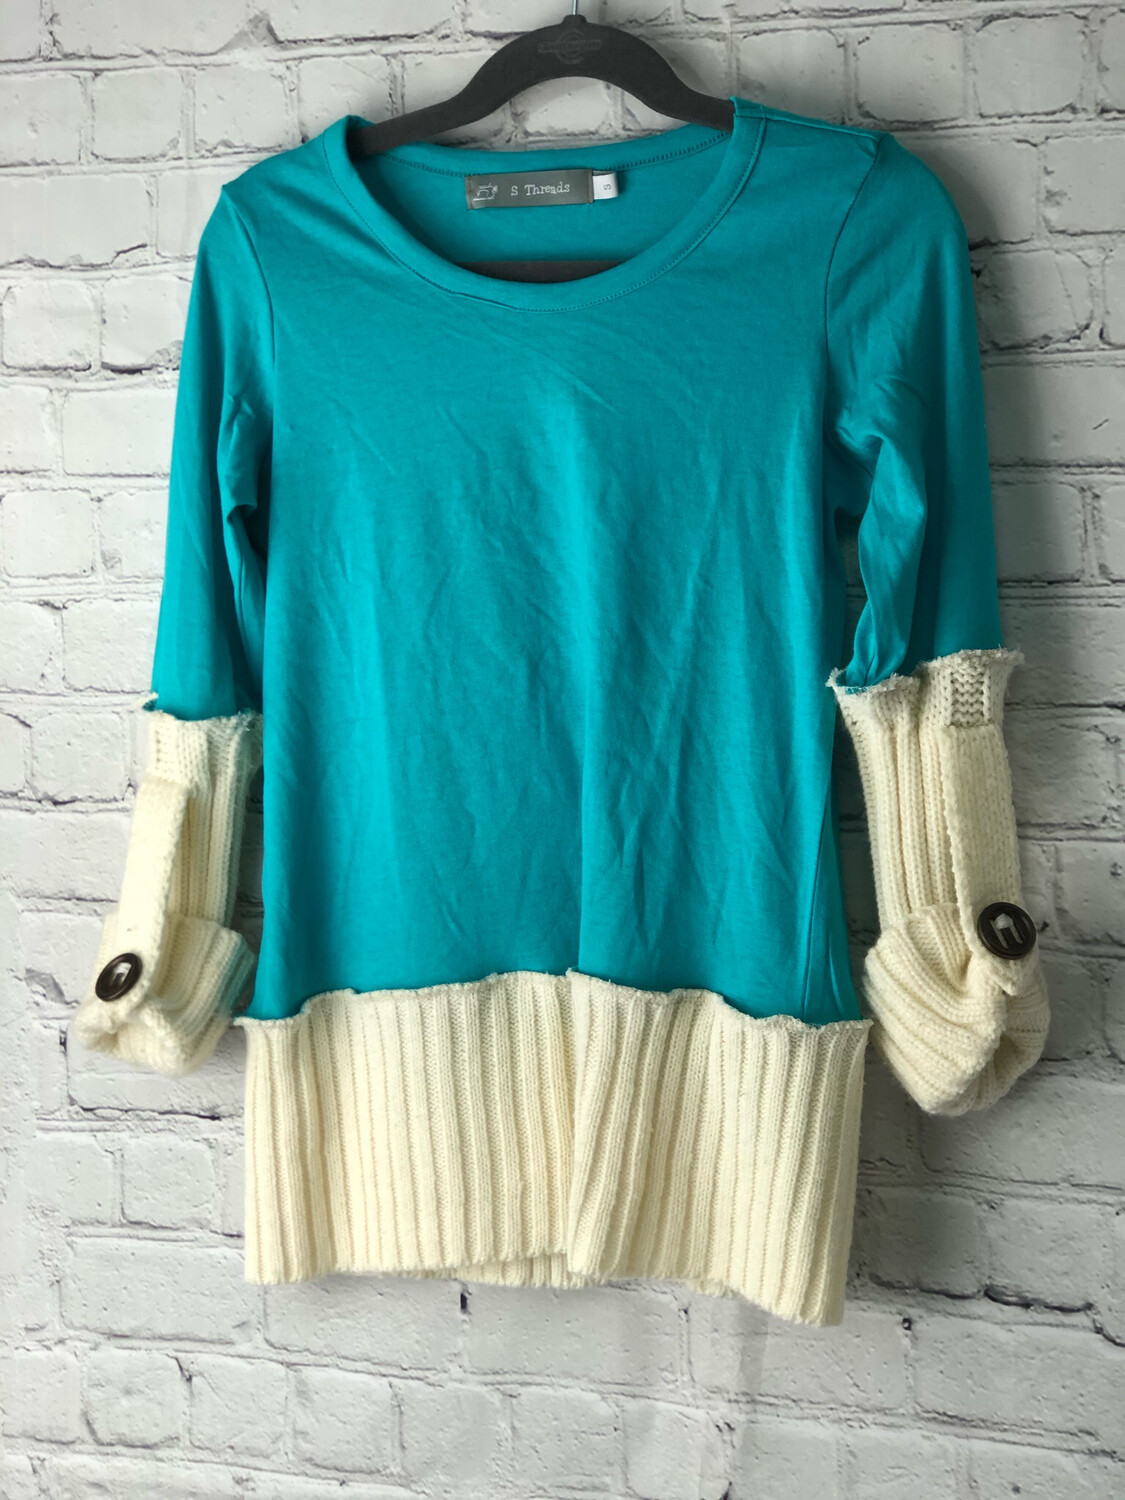 S Threads Kids Upcycled Long Sleeve Shirt Sweater Size Child Small